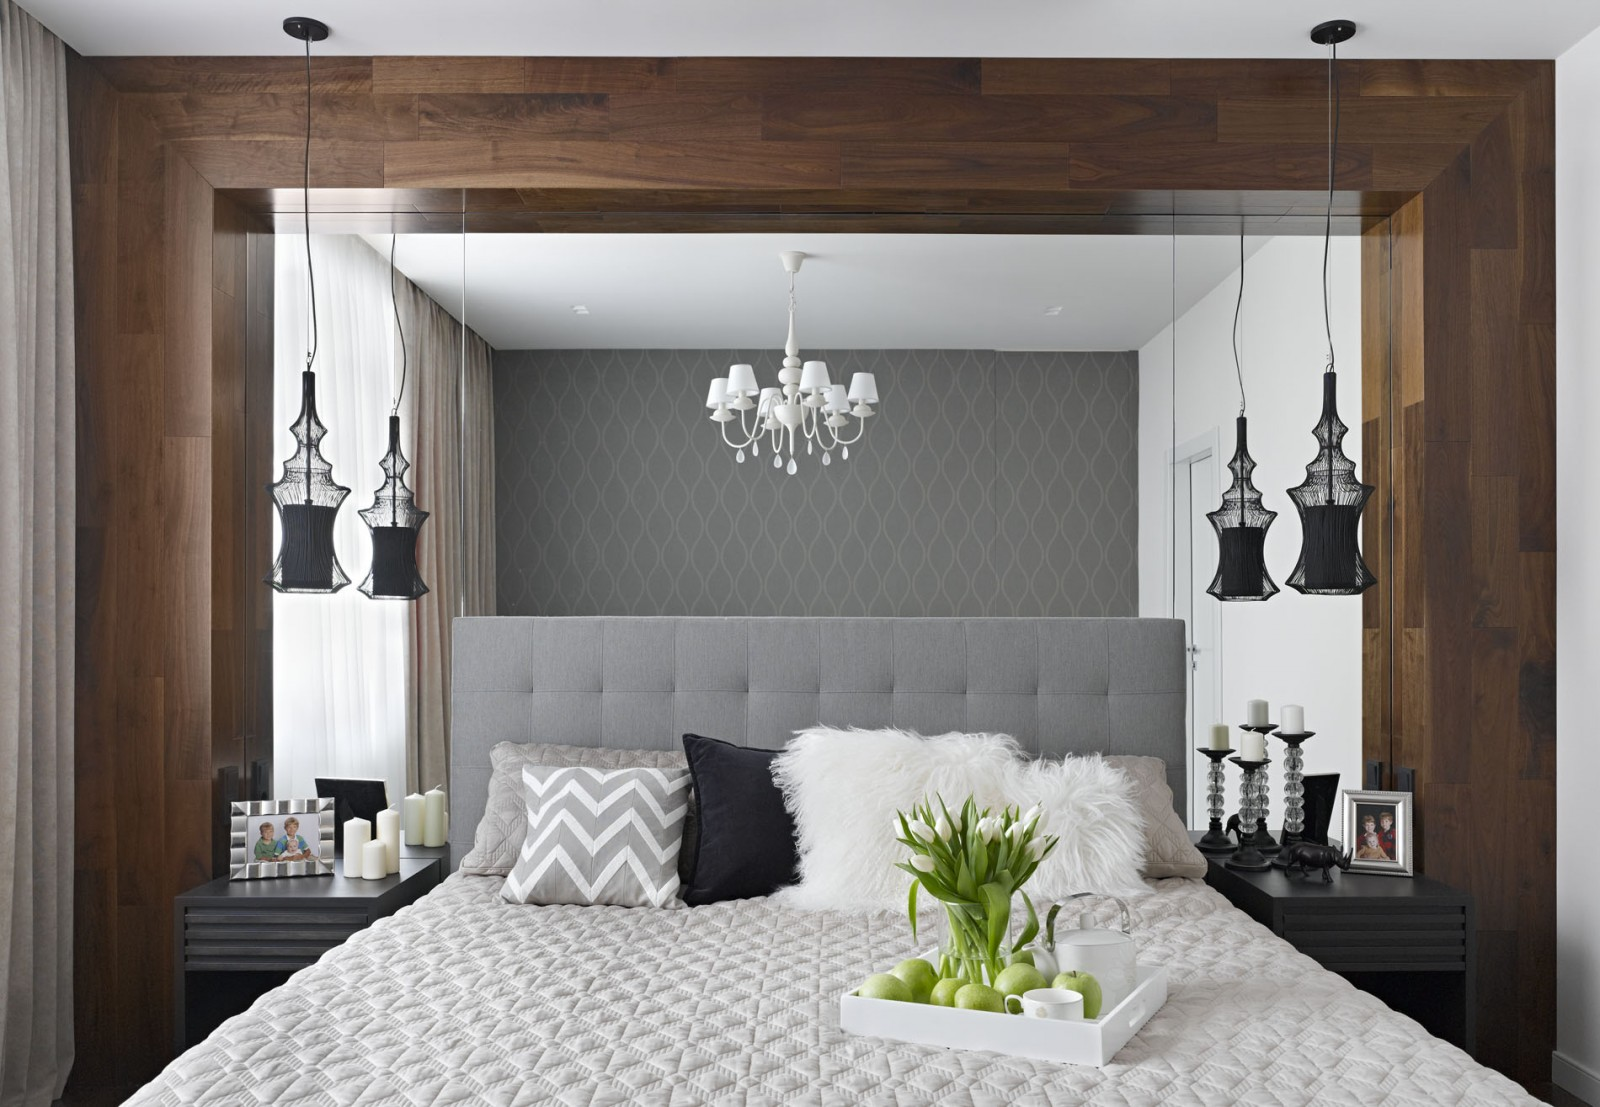 this bedroom shows how mirror can make small room look bigger and